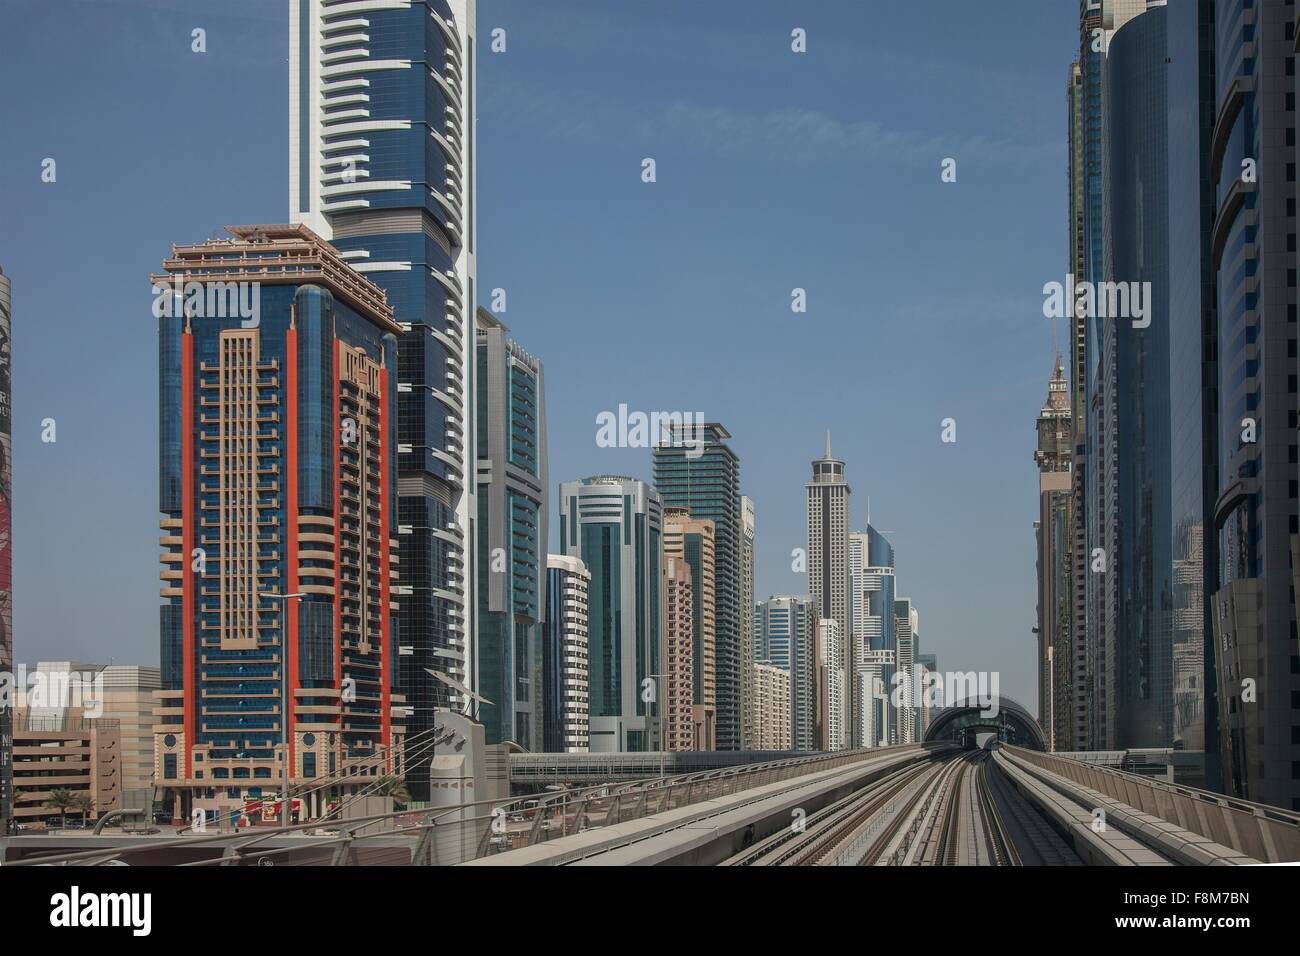 City skyline and Dubai metro rail track, downtown Dubai, United Arab Emirates Stock Photo